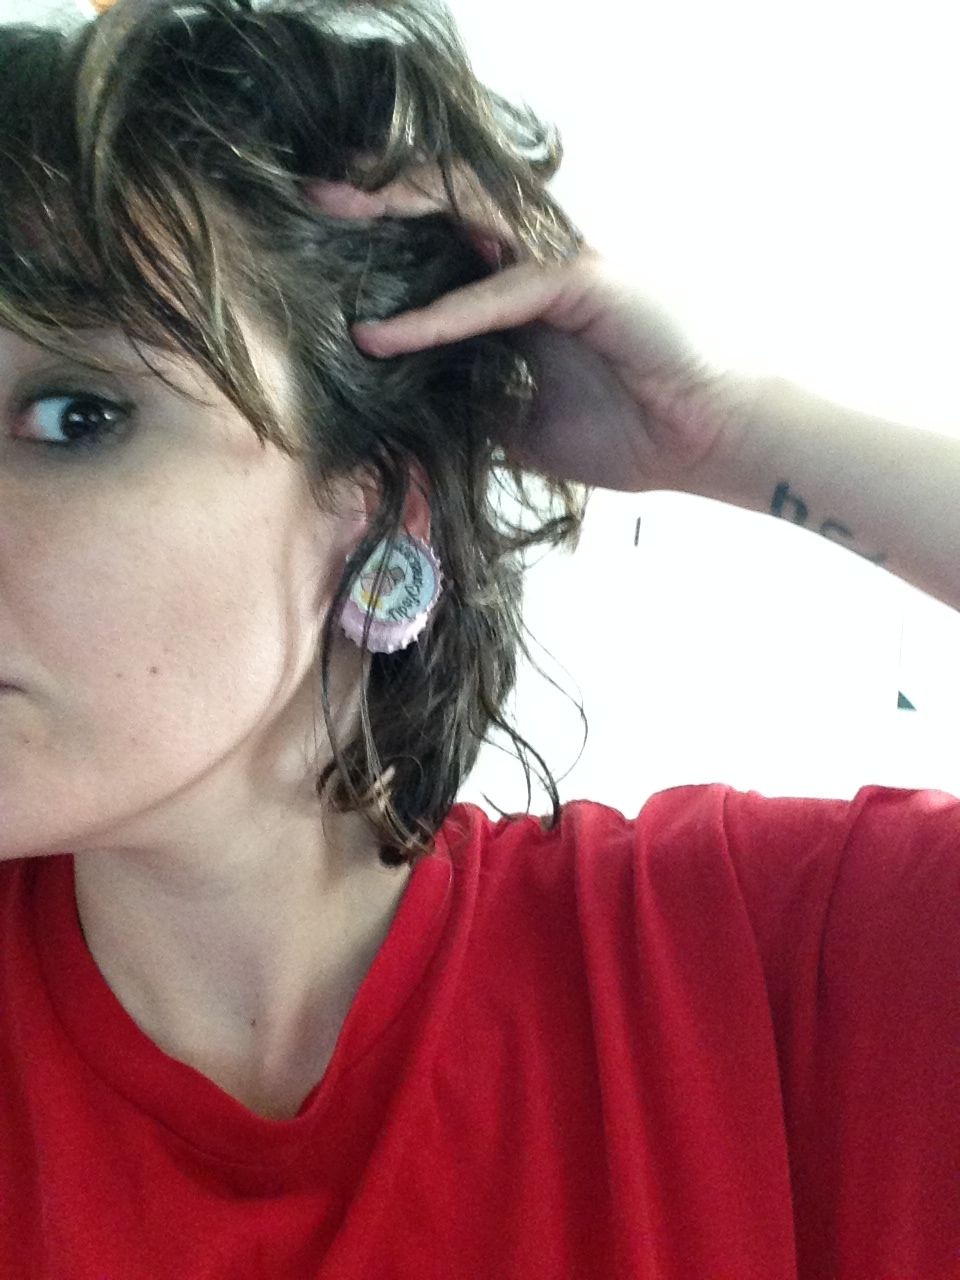 Bringing that button earring look back, baby. Seriously though, strong magnets, right?